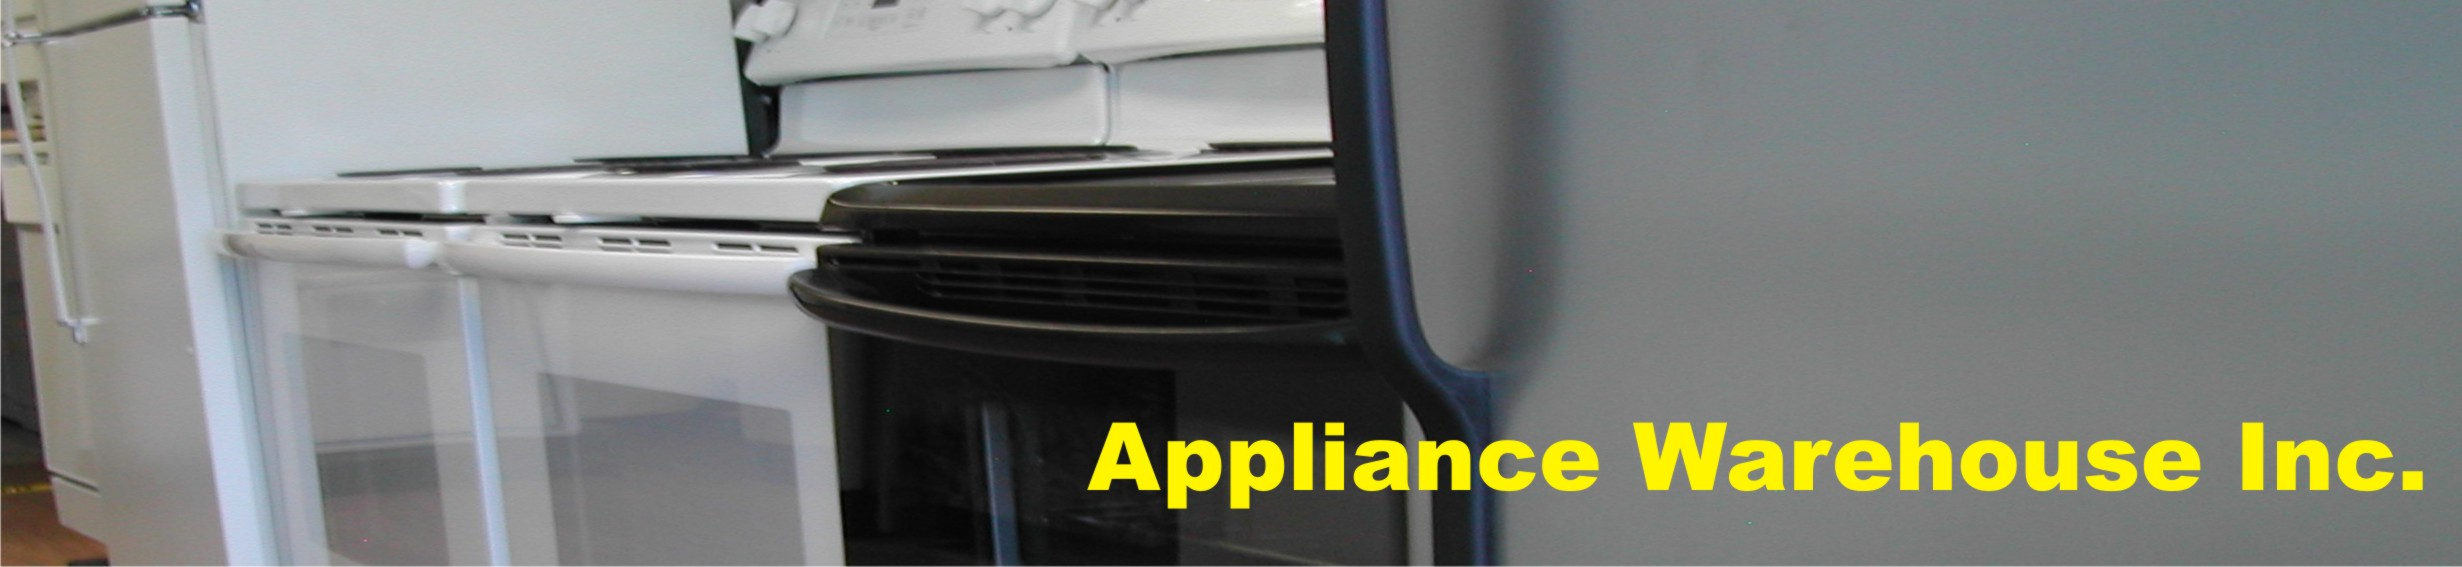 Appliance Warehouse Inc. Arvada Colorado